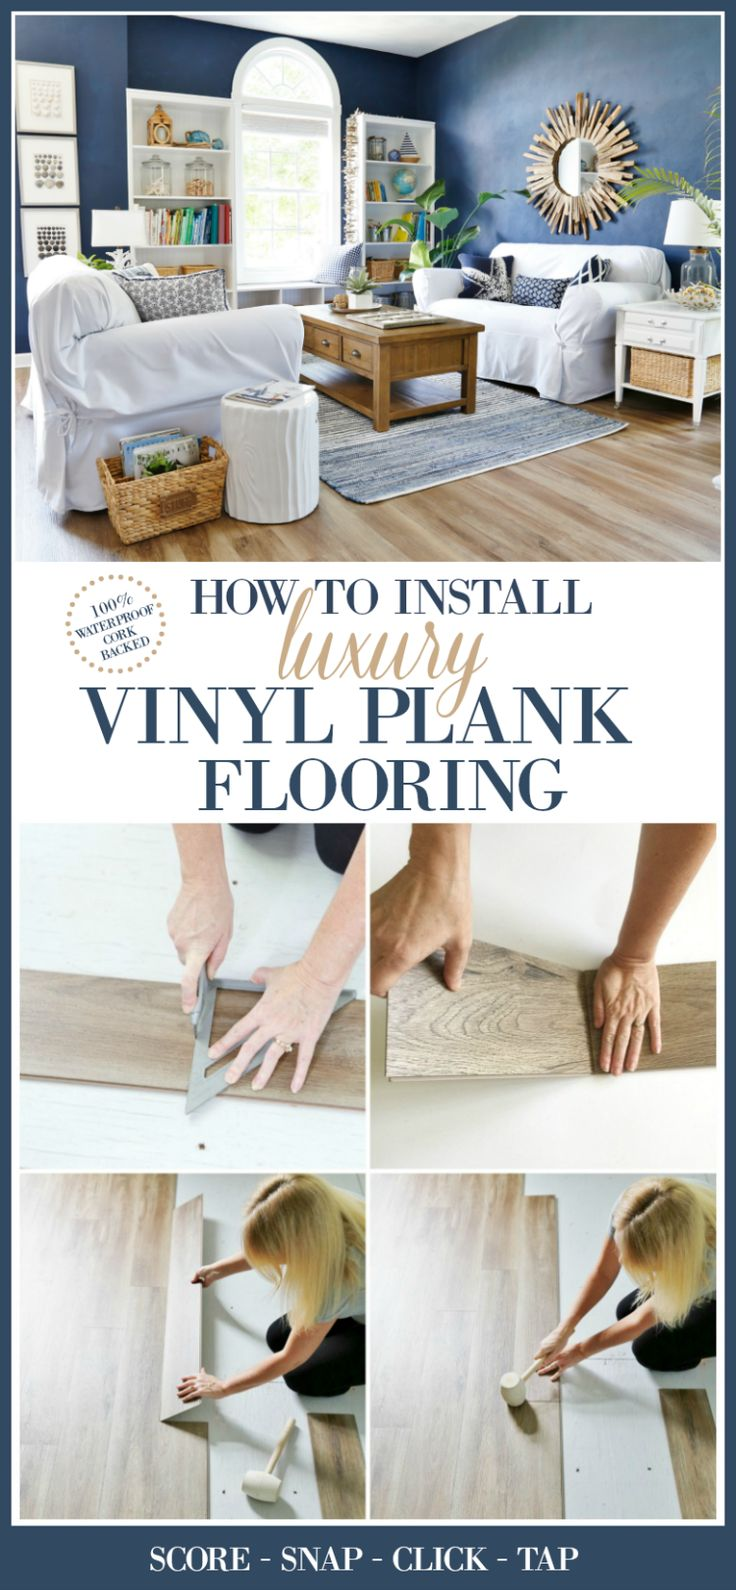 How to Install Luxury Vinyl Plank Flooring. This 100% waterproof, cork backed flooring is easy to install for a DIY-er, requires no nails or glue, and has a lifetime warranty!